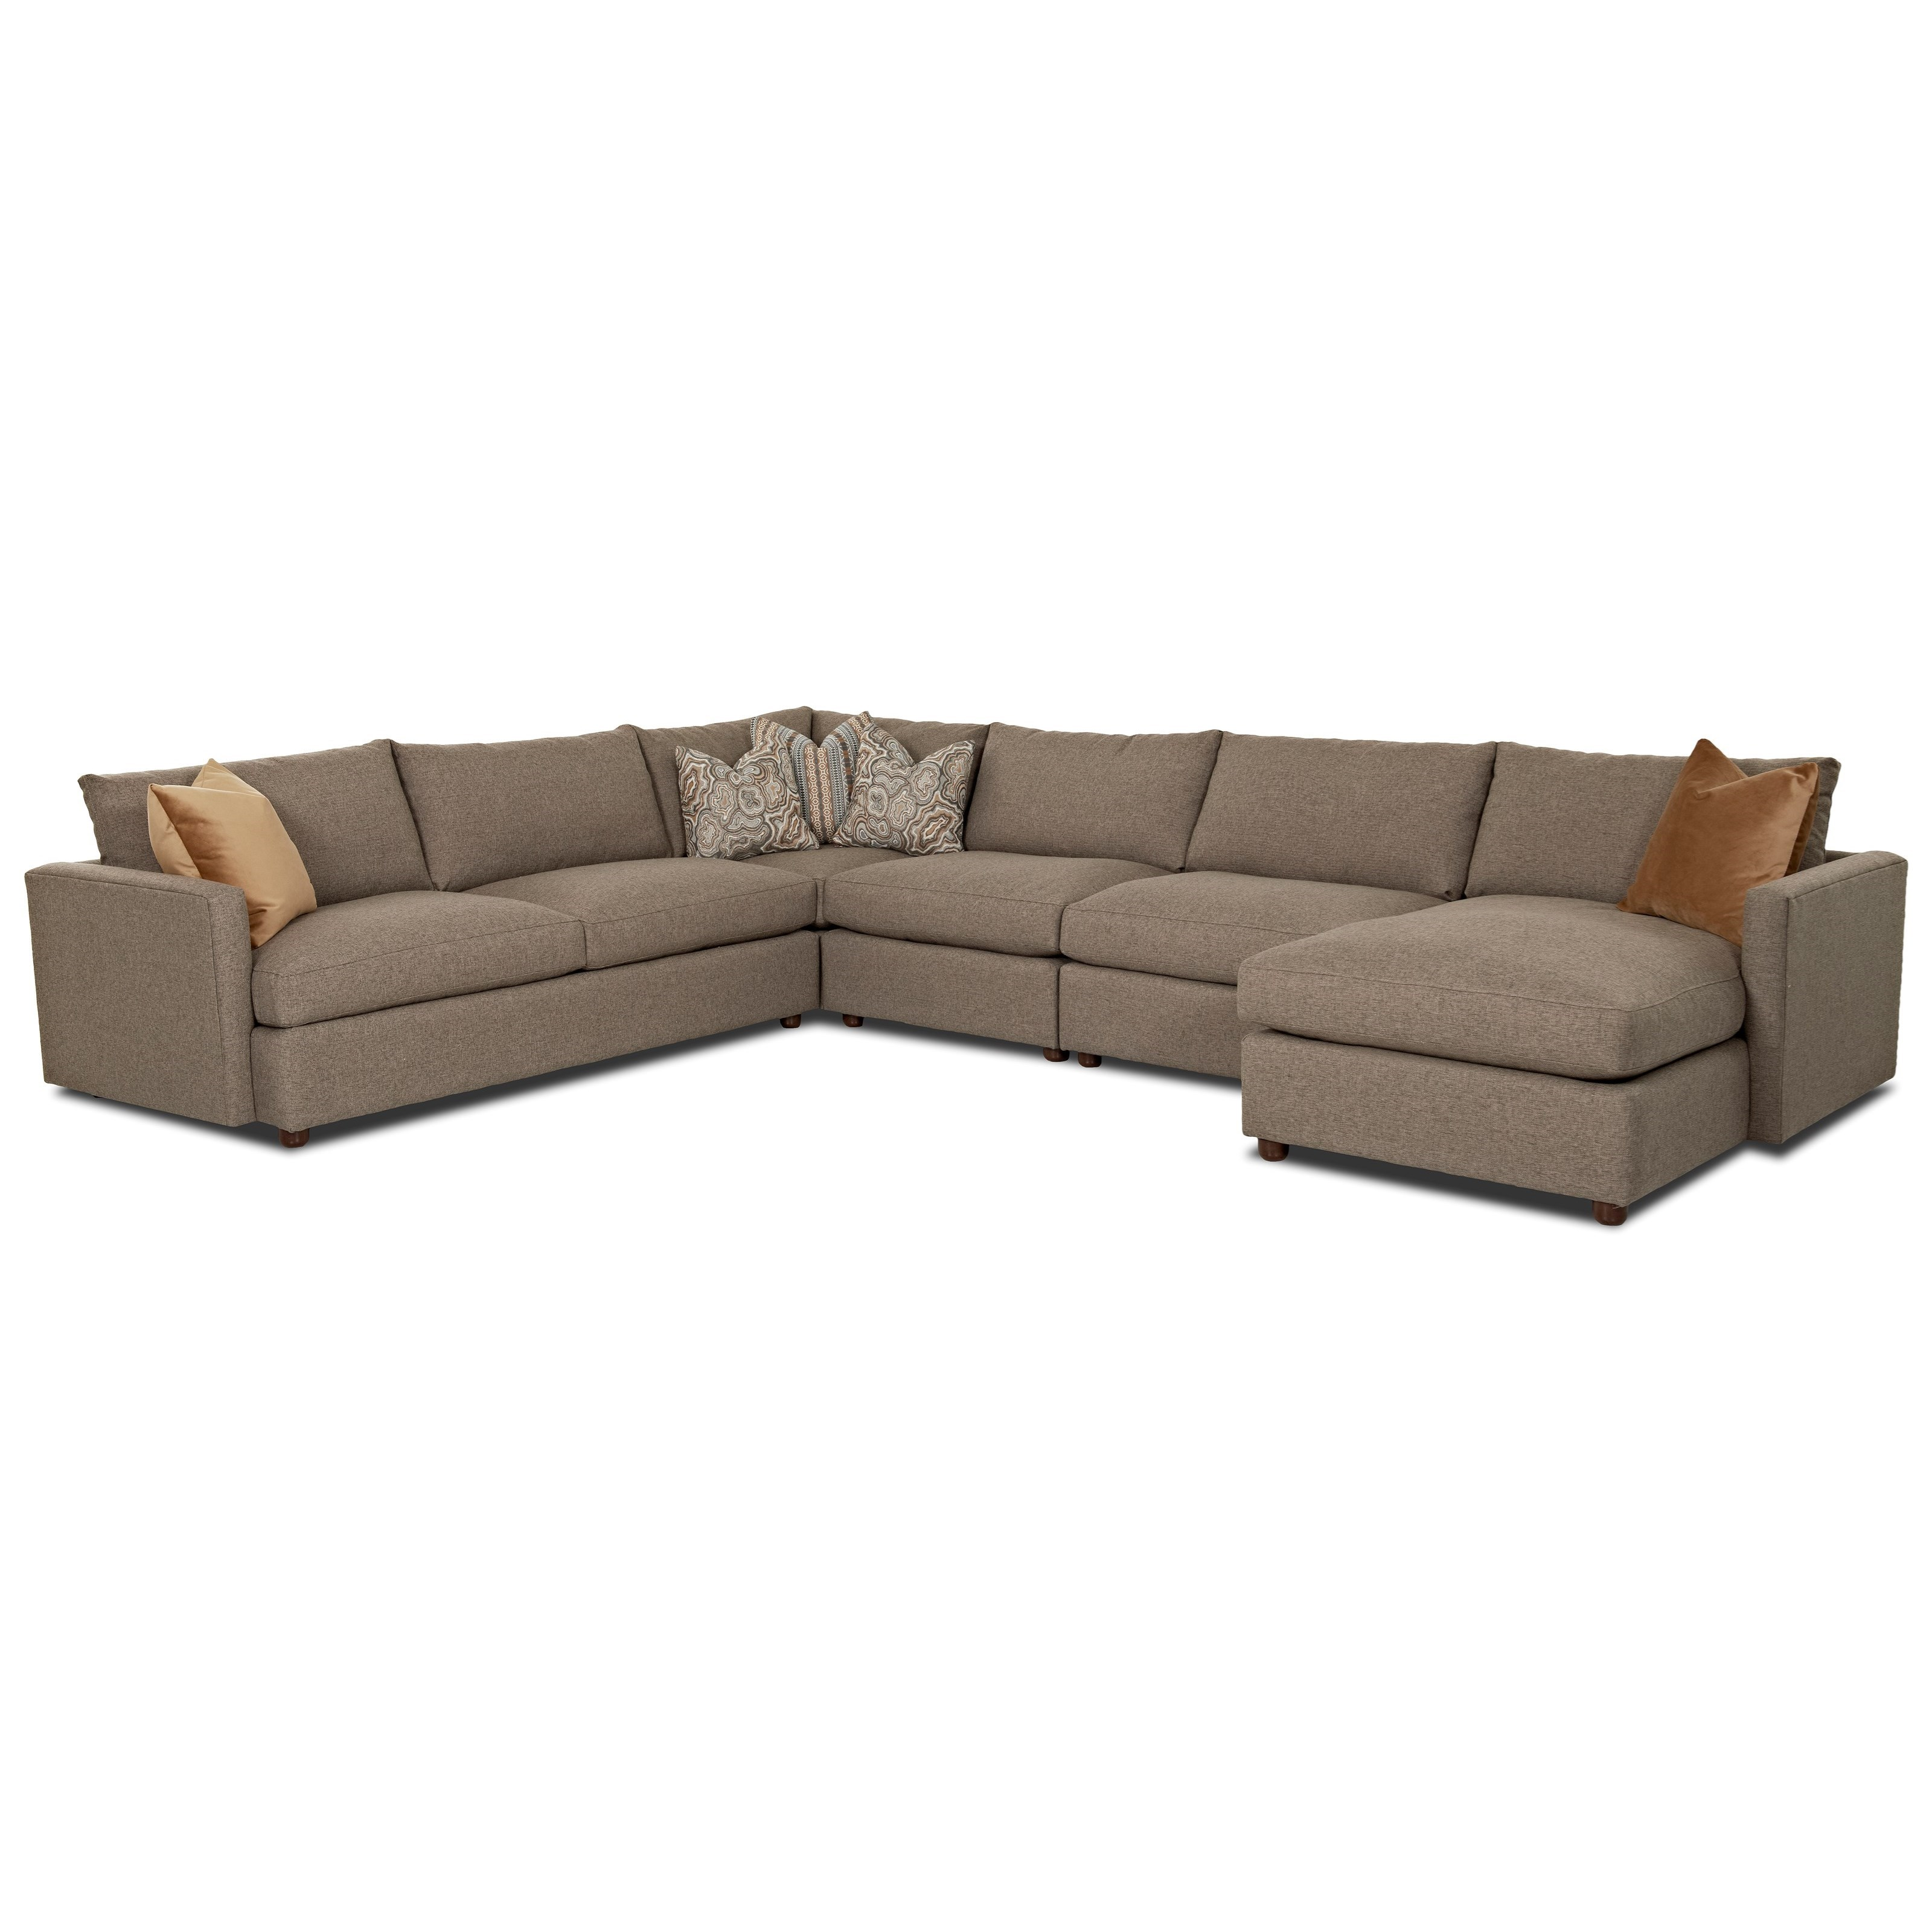 Leisure Sectional Sofa by Klaussner at Johnny Janosik